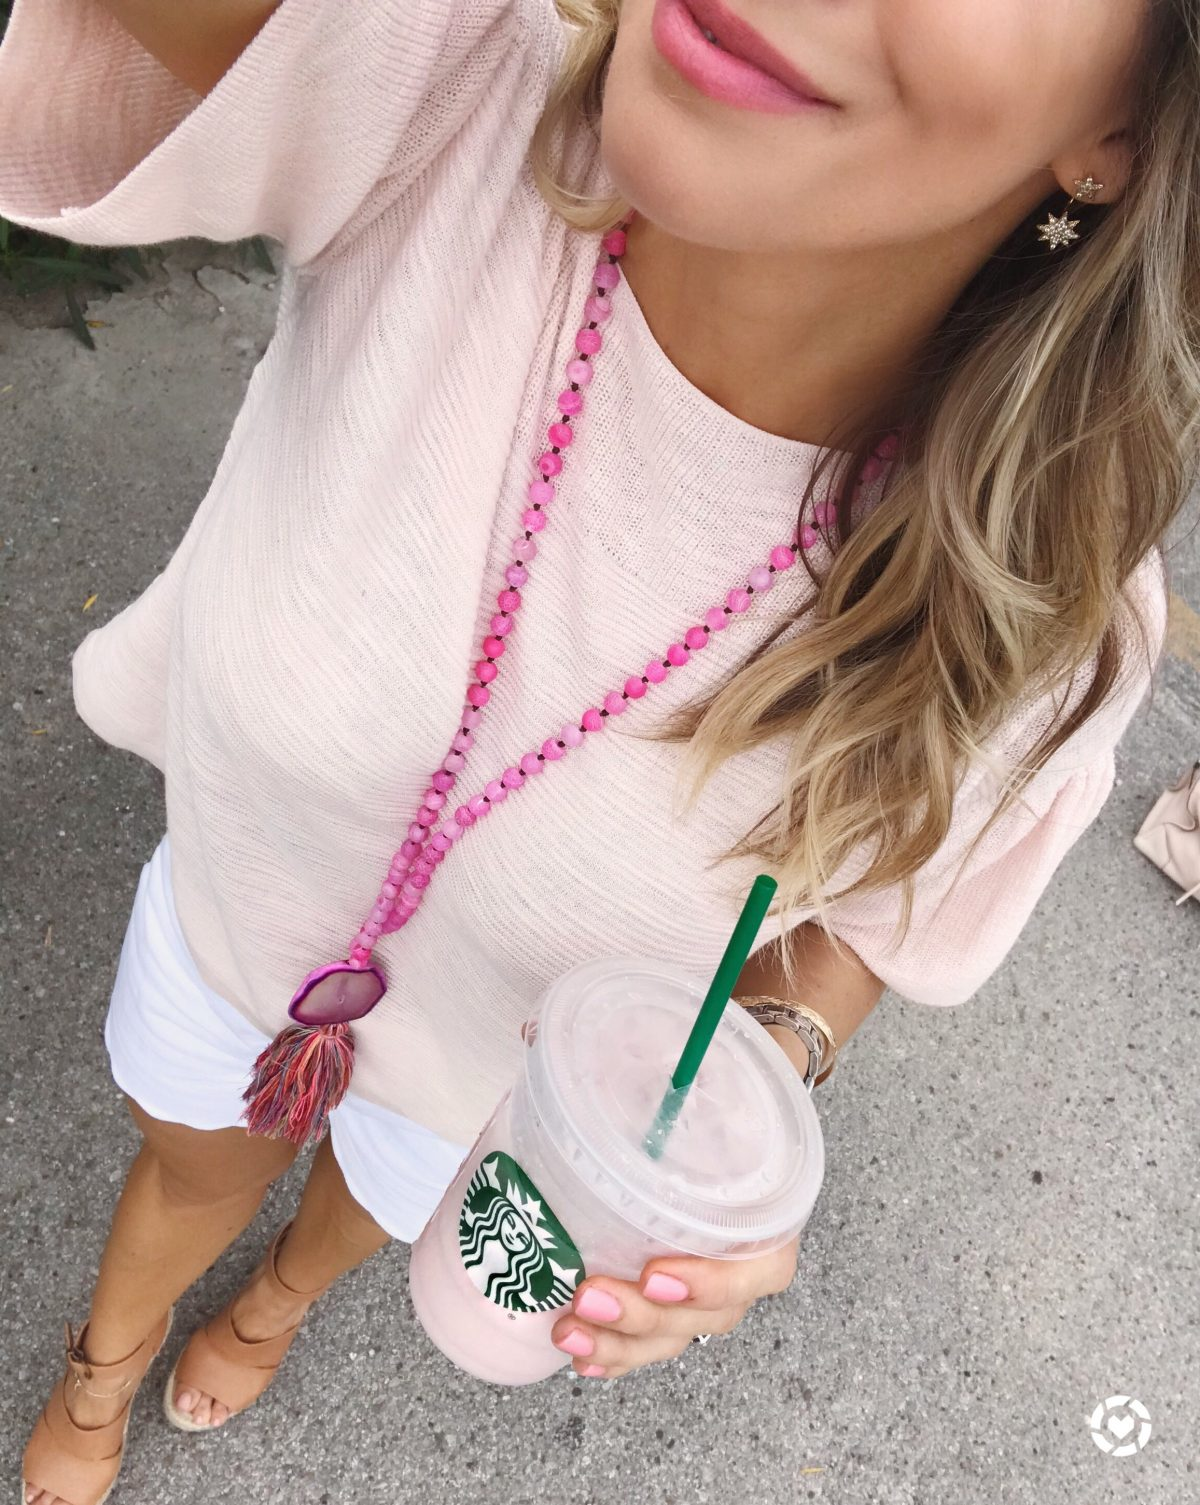 Spring outfit - pink flutter sleeve top and white shorts